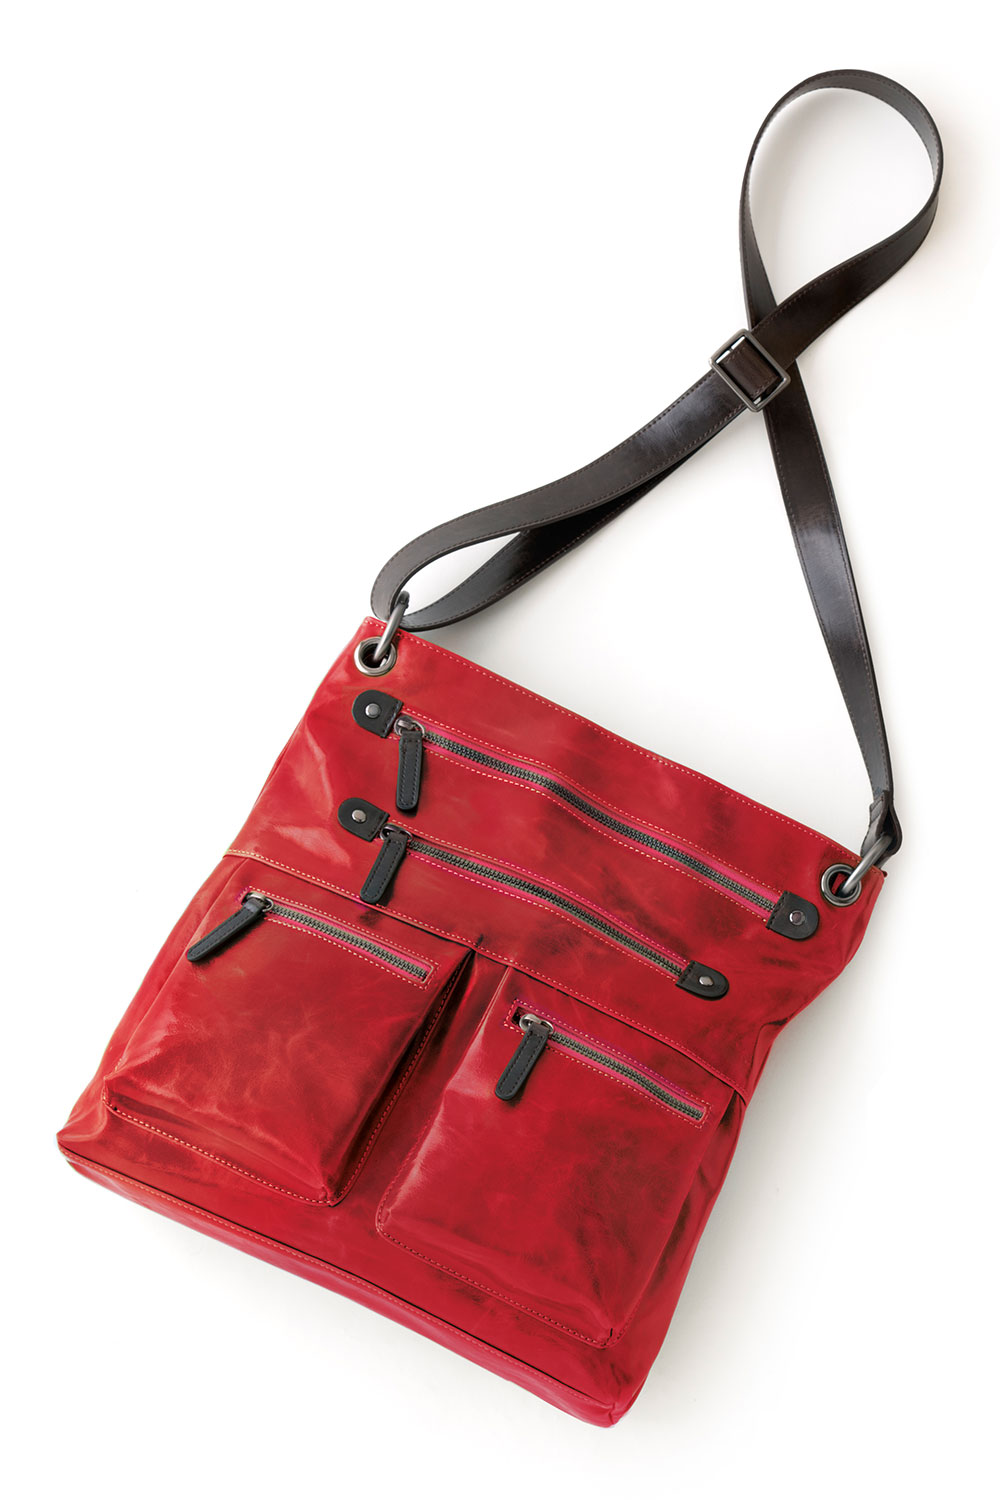 Shiraleah Handbags: Harper cross body bag - Pomegranate